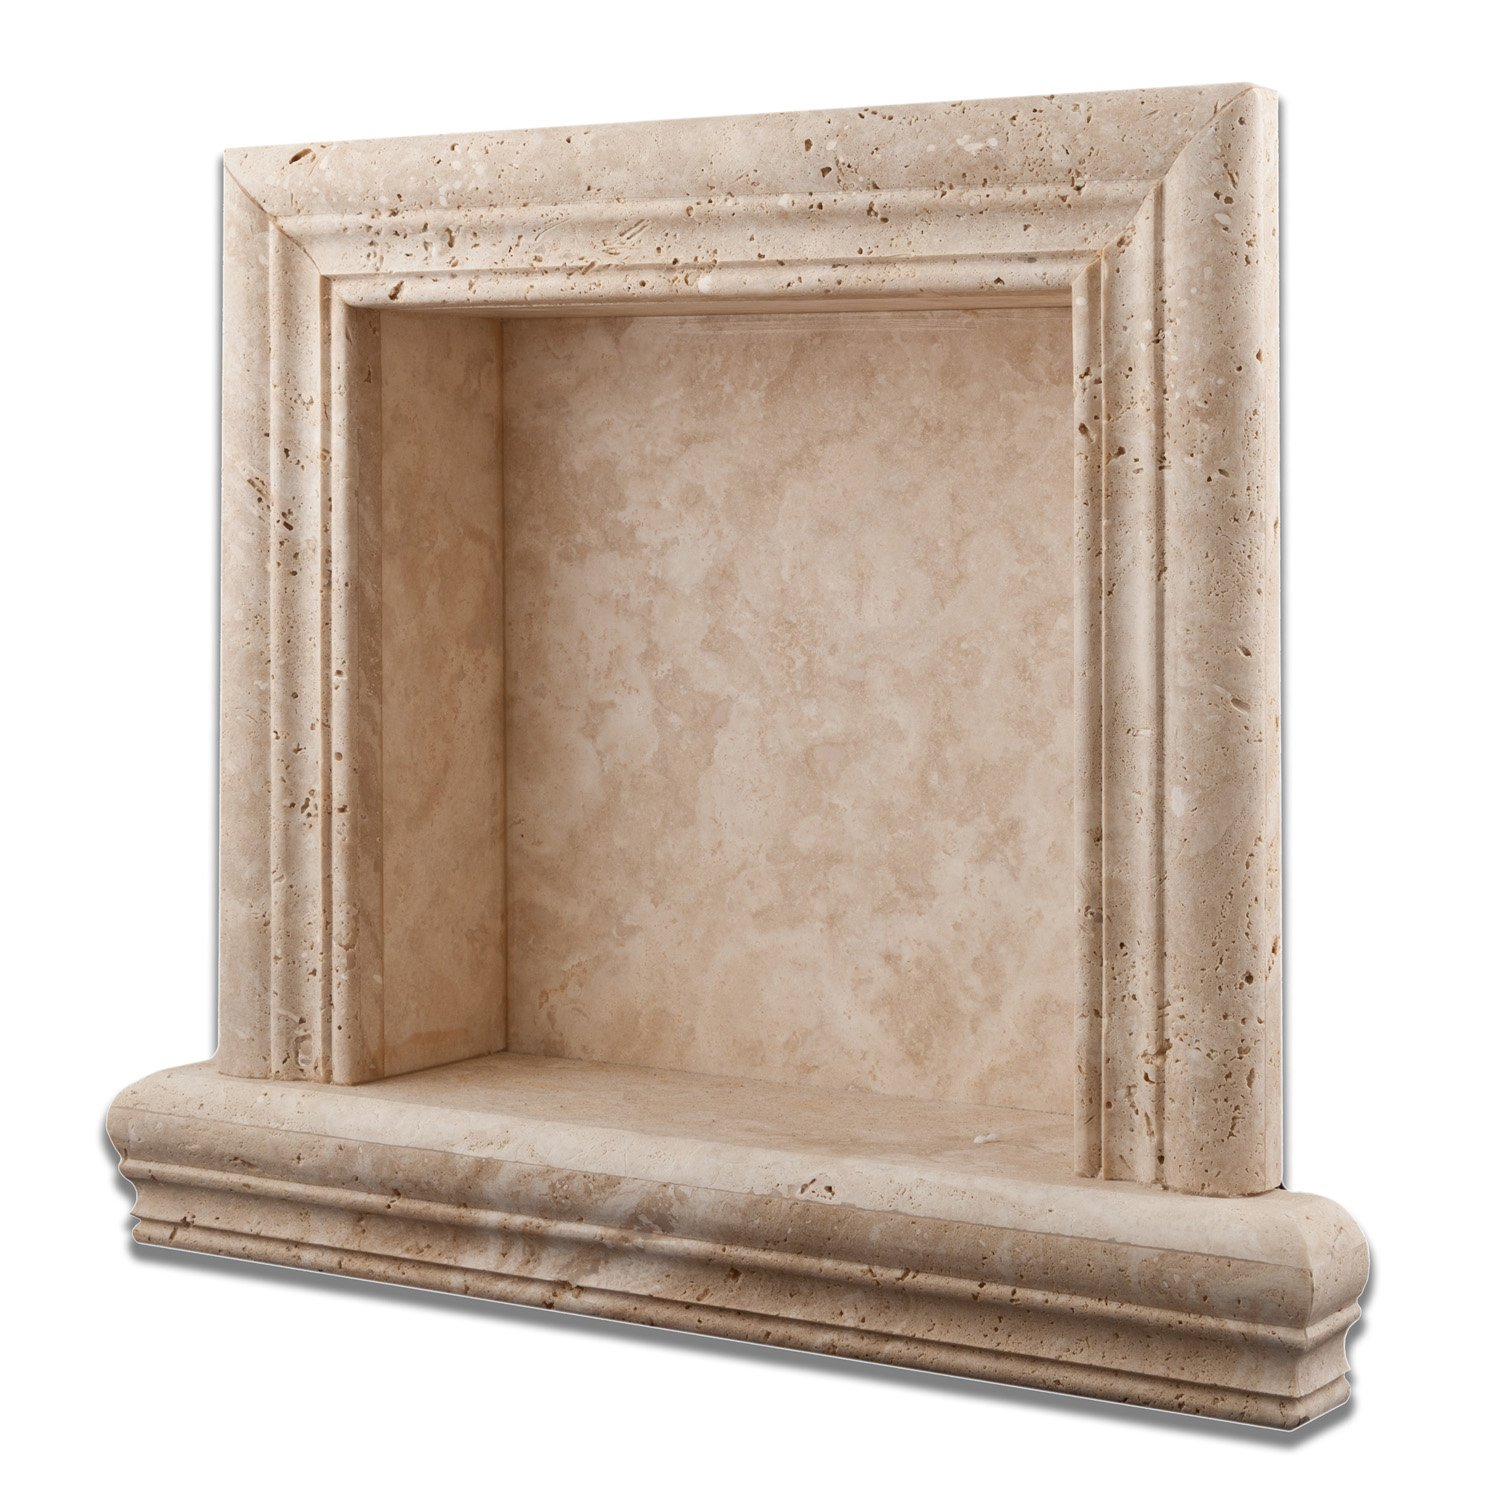 Ivory Travertine Hand-Made Honed Shampoo Niche / Shelf - SMALL